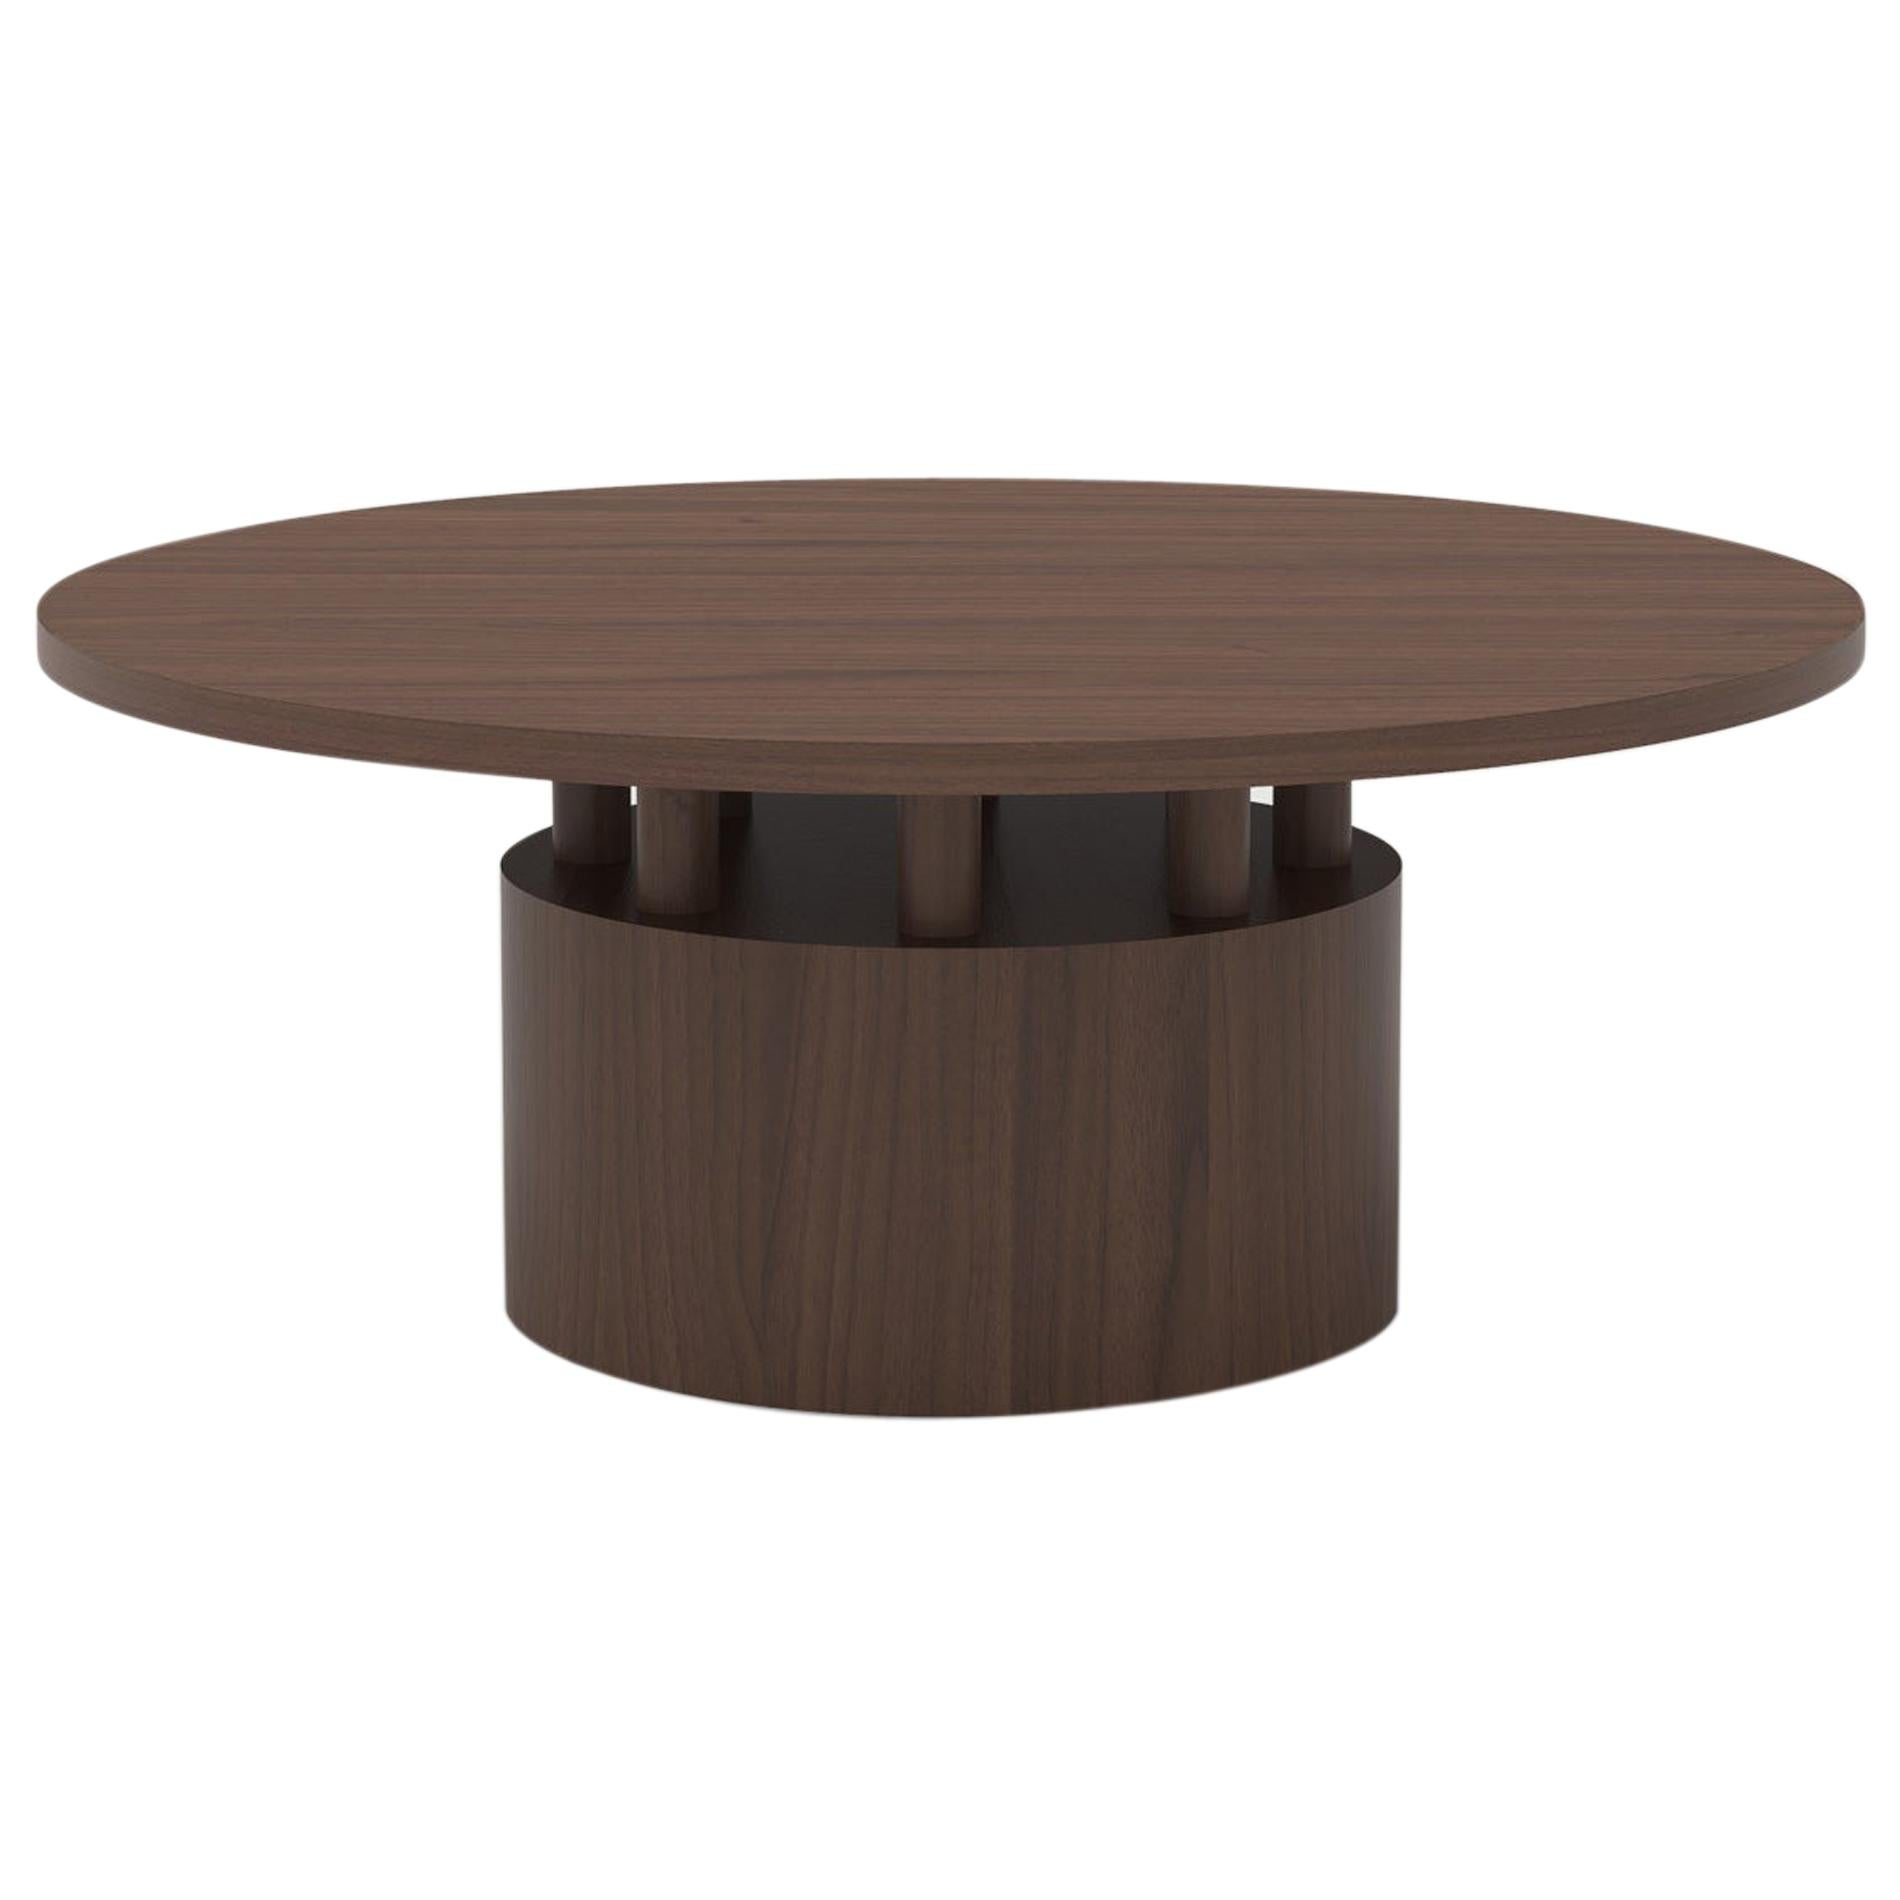 Wood Coffee Table with Round Base and Painted Cylindrical Posts Shown in Oak